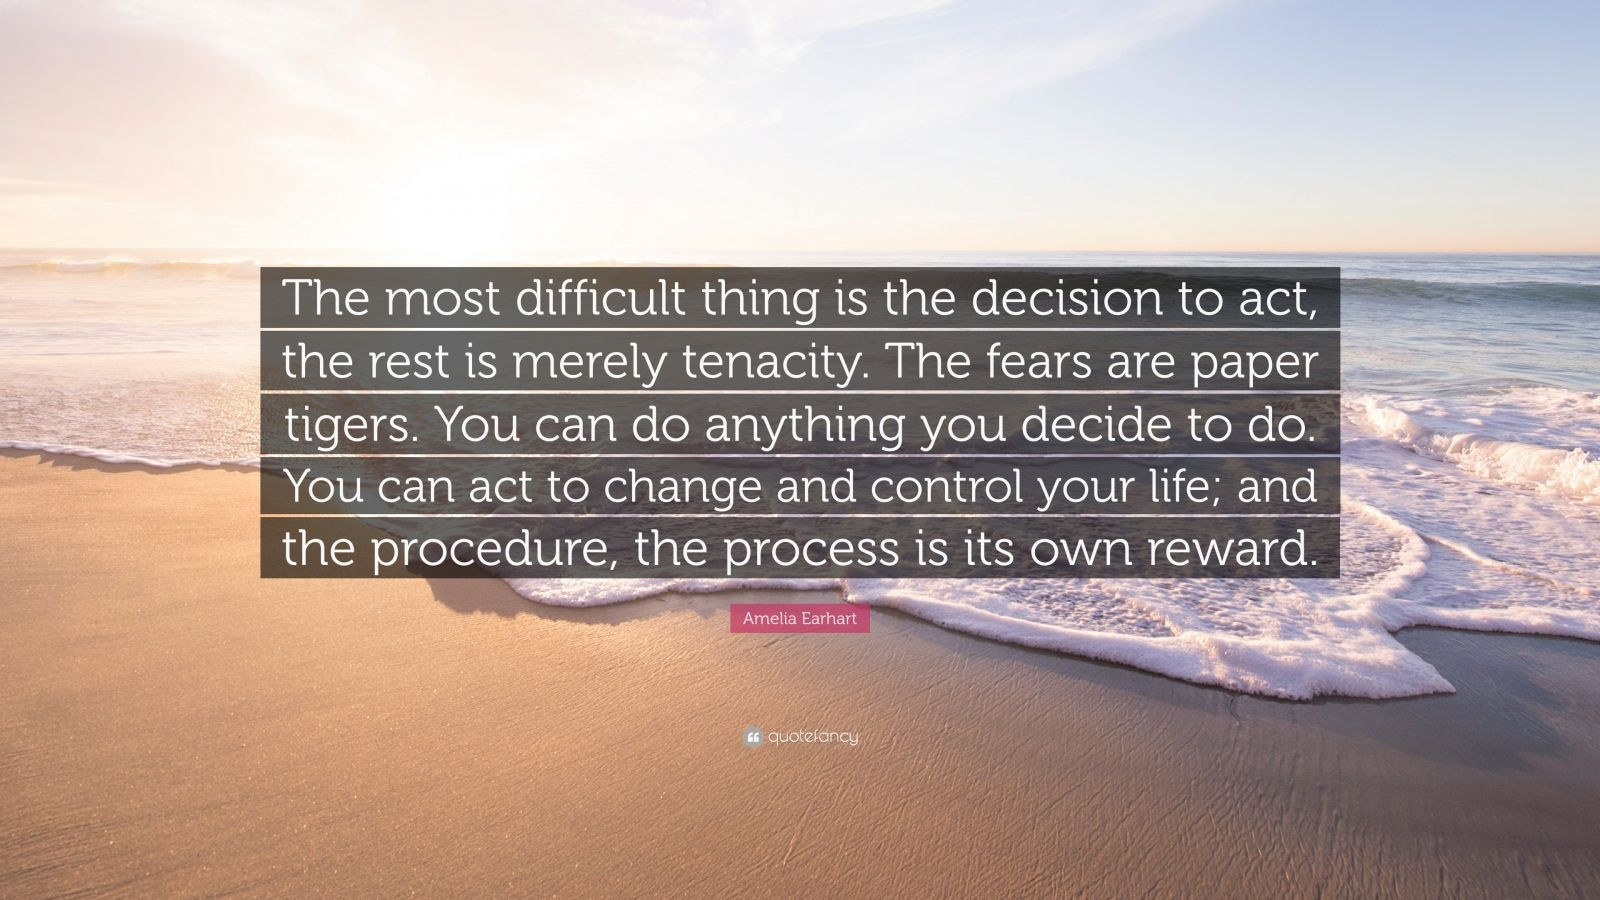 """Amelia Earhart Quote: """"The most difficult thing is the decision to act, the rest is merely tenacity. The fears are paper tigers. You can do anything you decide to do. You can act to change and control your life; and the procedure, the process is its own reward."""""""